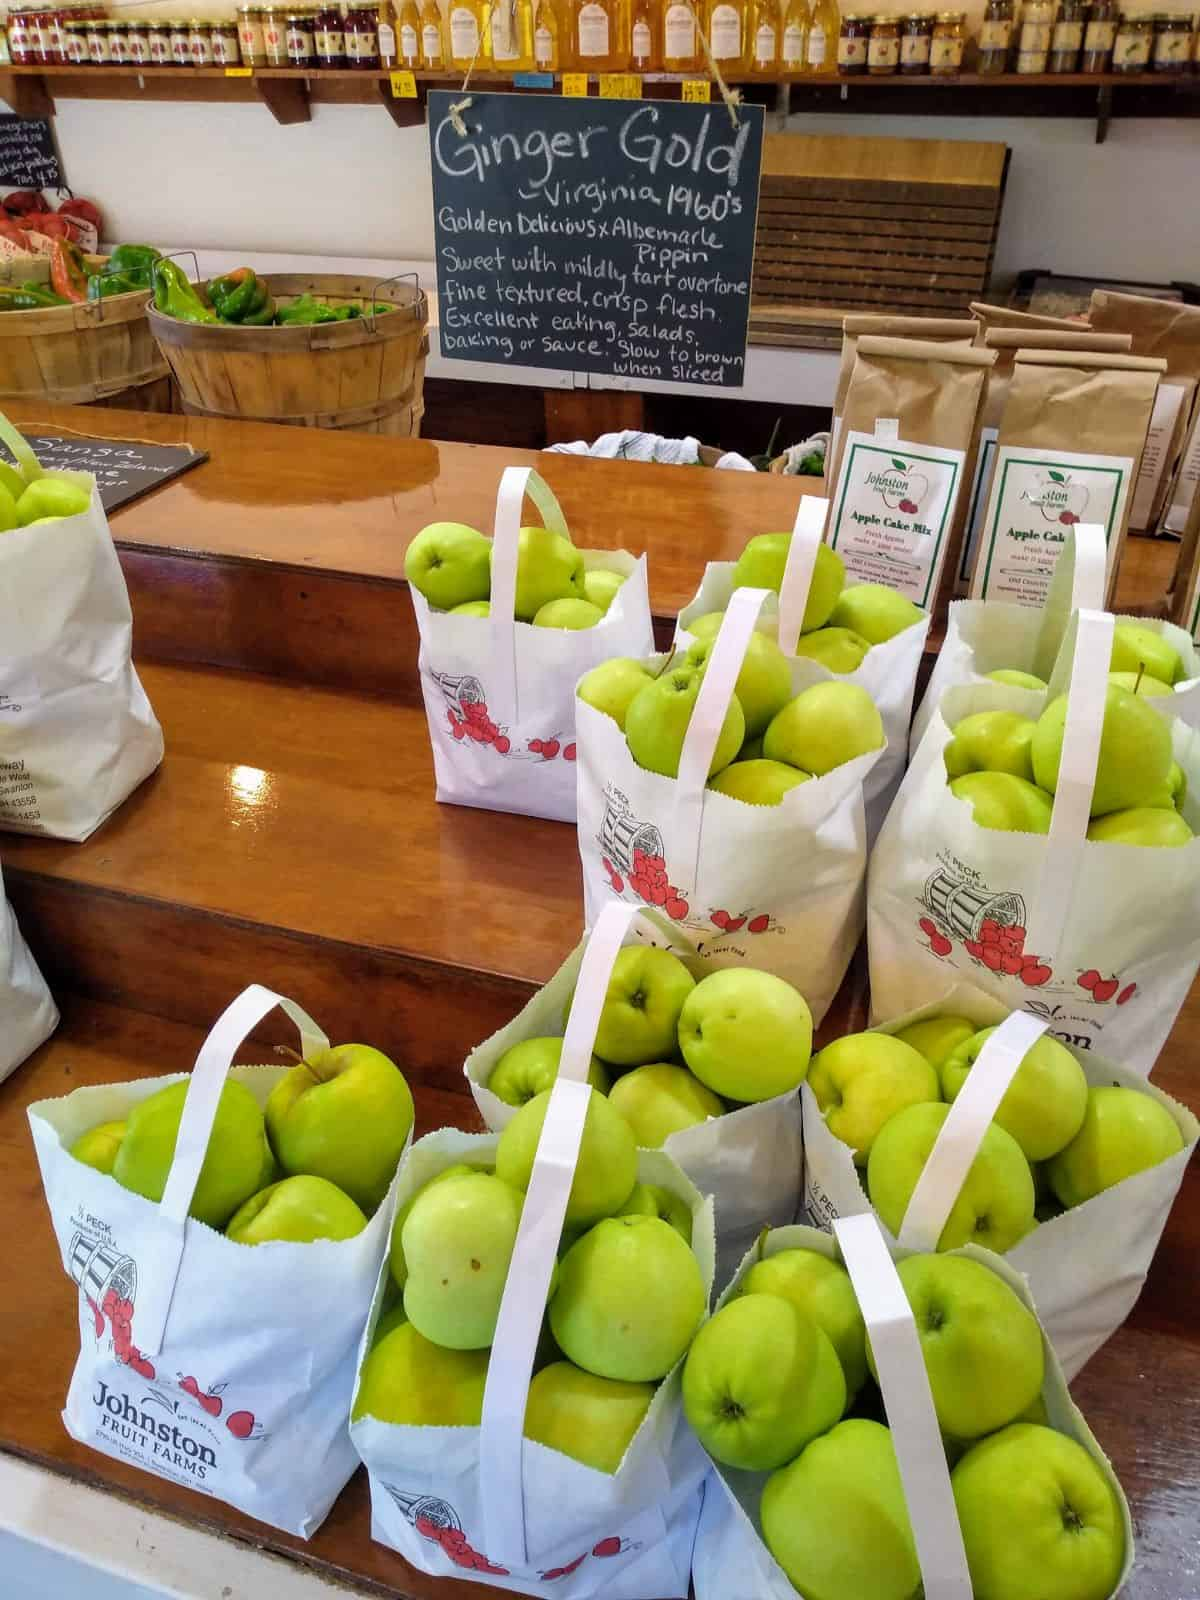 Bags of Ginger gold apples sit on a layered shelves at a farm market. The sign describes them as a cross between Golden Delicious and Albermale Pippin. Sweet with mildly tart overtone. Fine textured, crisp flesh. Excellent eating, salads, baking or sauce. Slow to brown when sliced.